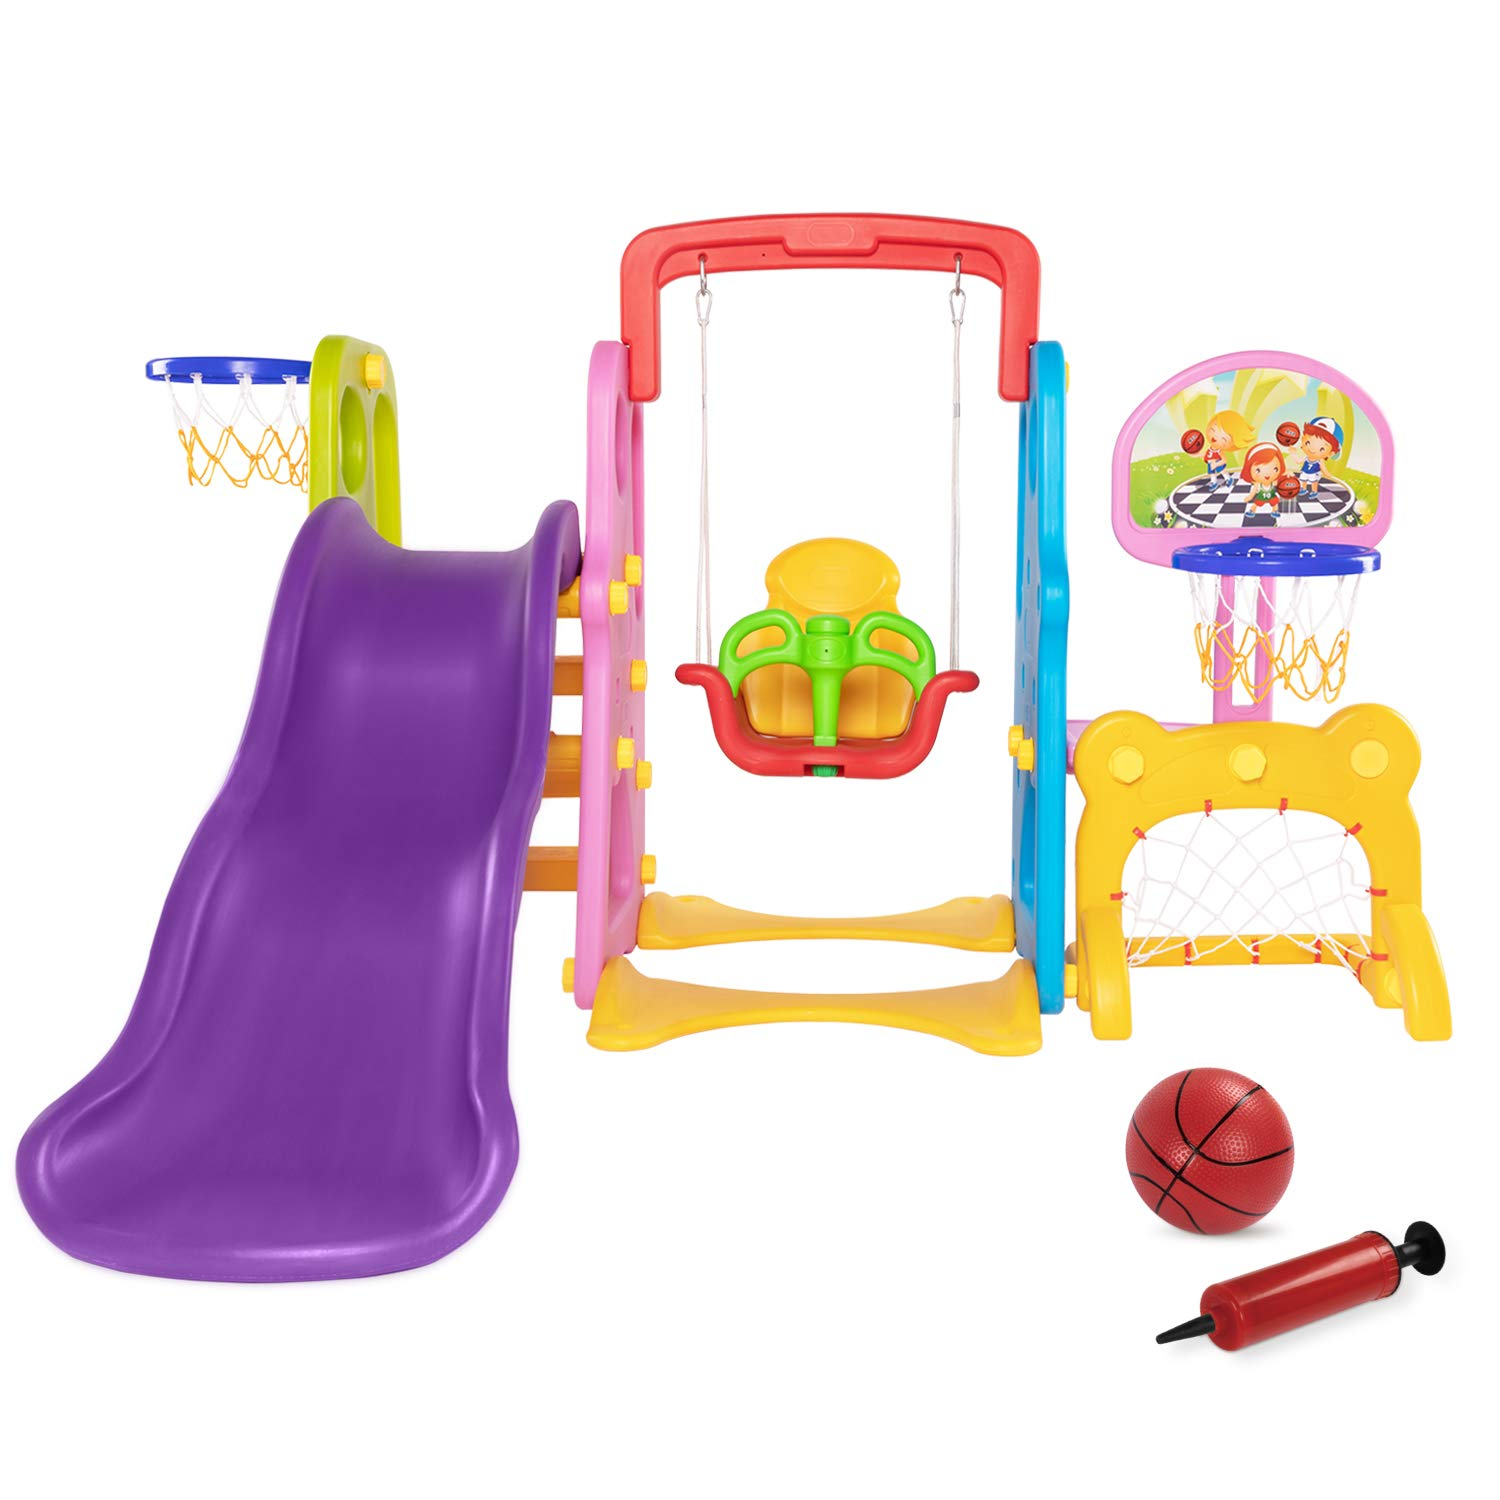 5 in 1 Climber and Swing Set, Toddler Slide and Swing Set, Basketball Hoop, Football Gate, Playset for Backyard, Playground Set, Baby Swing Outdoor & Indoor, Yard Games for Kids, Baby Outside Toys by AuAg